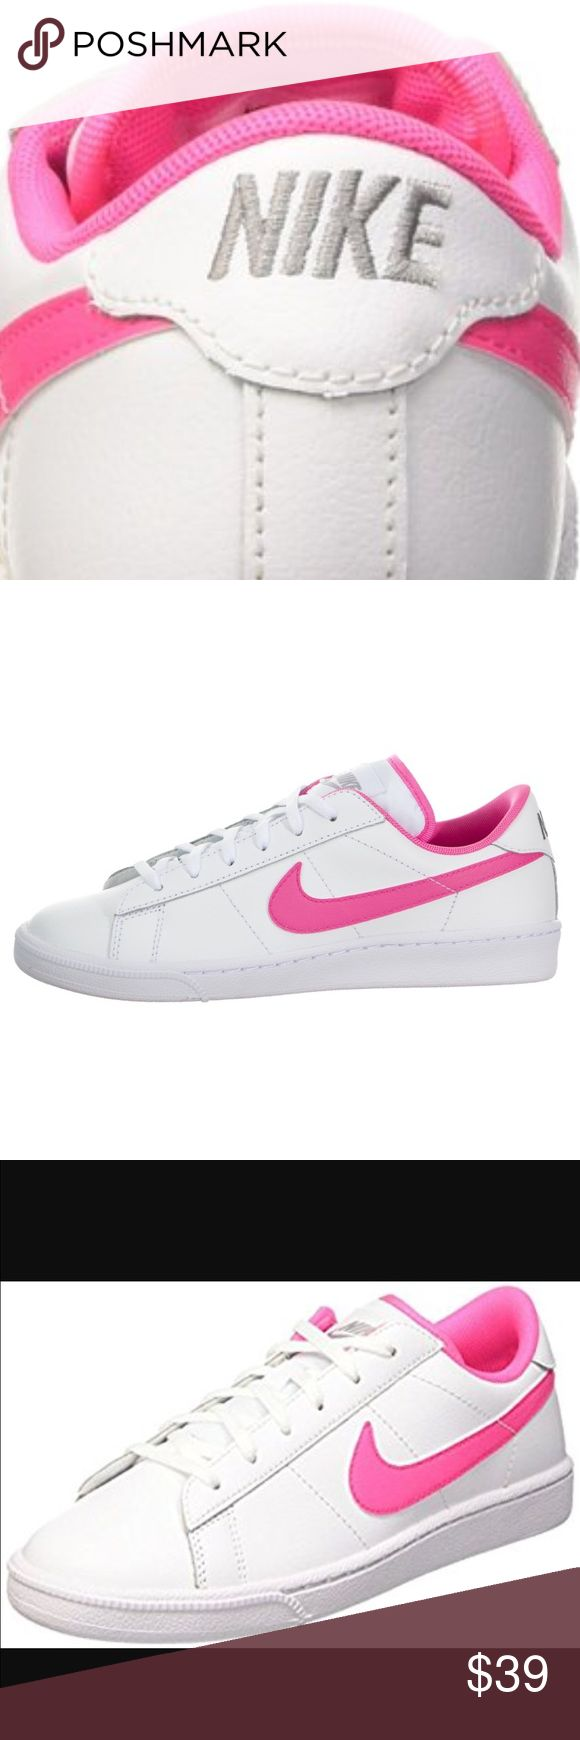 Elegant Details About NEW NIKE Womens Sneaker Hoodie Boots Style  366449020